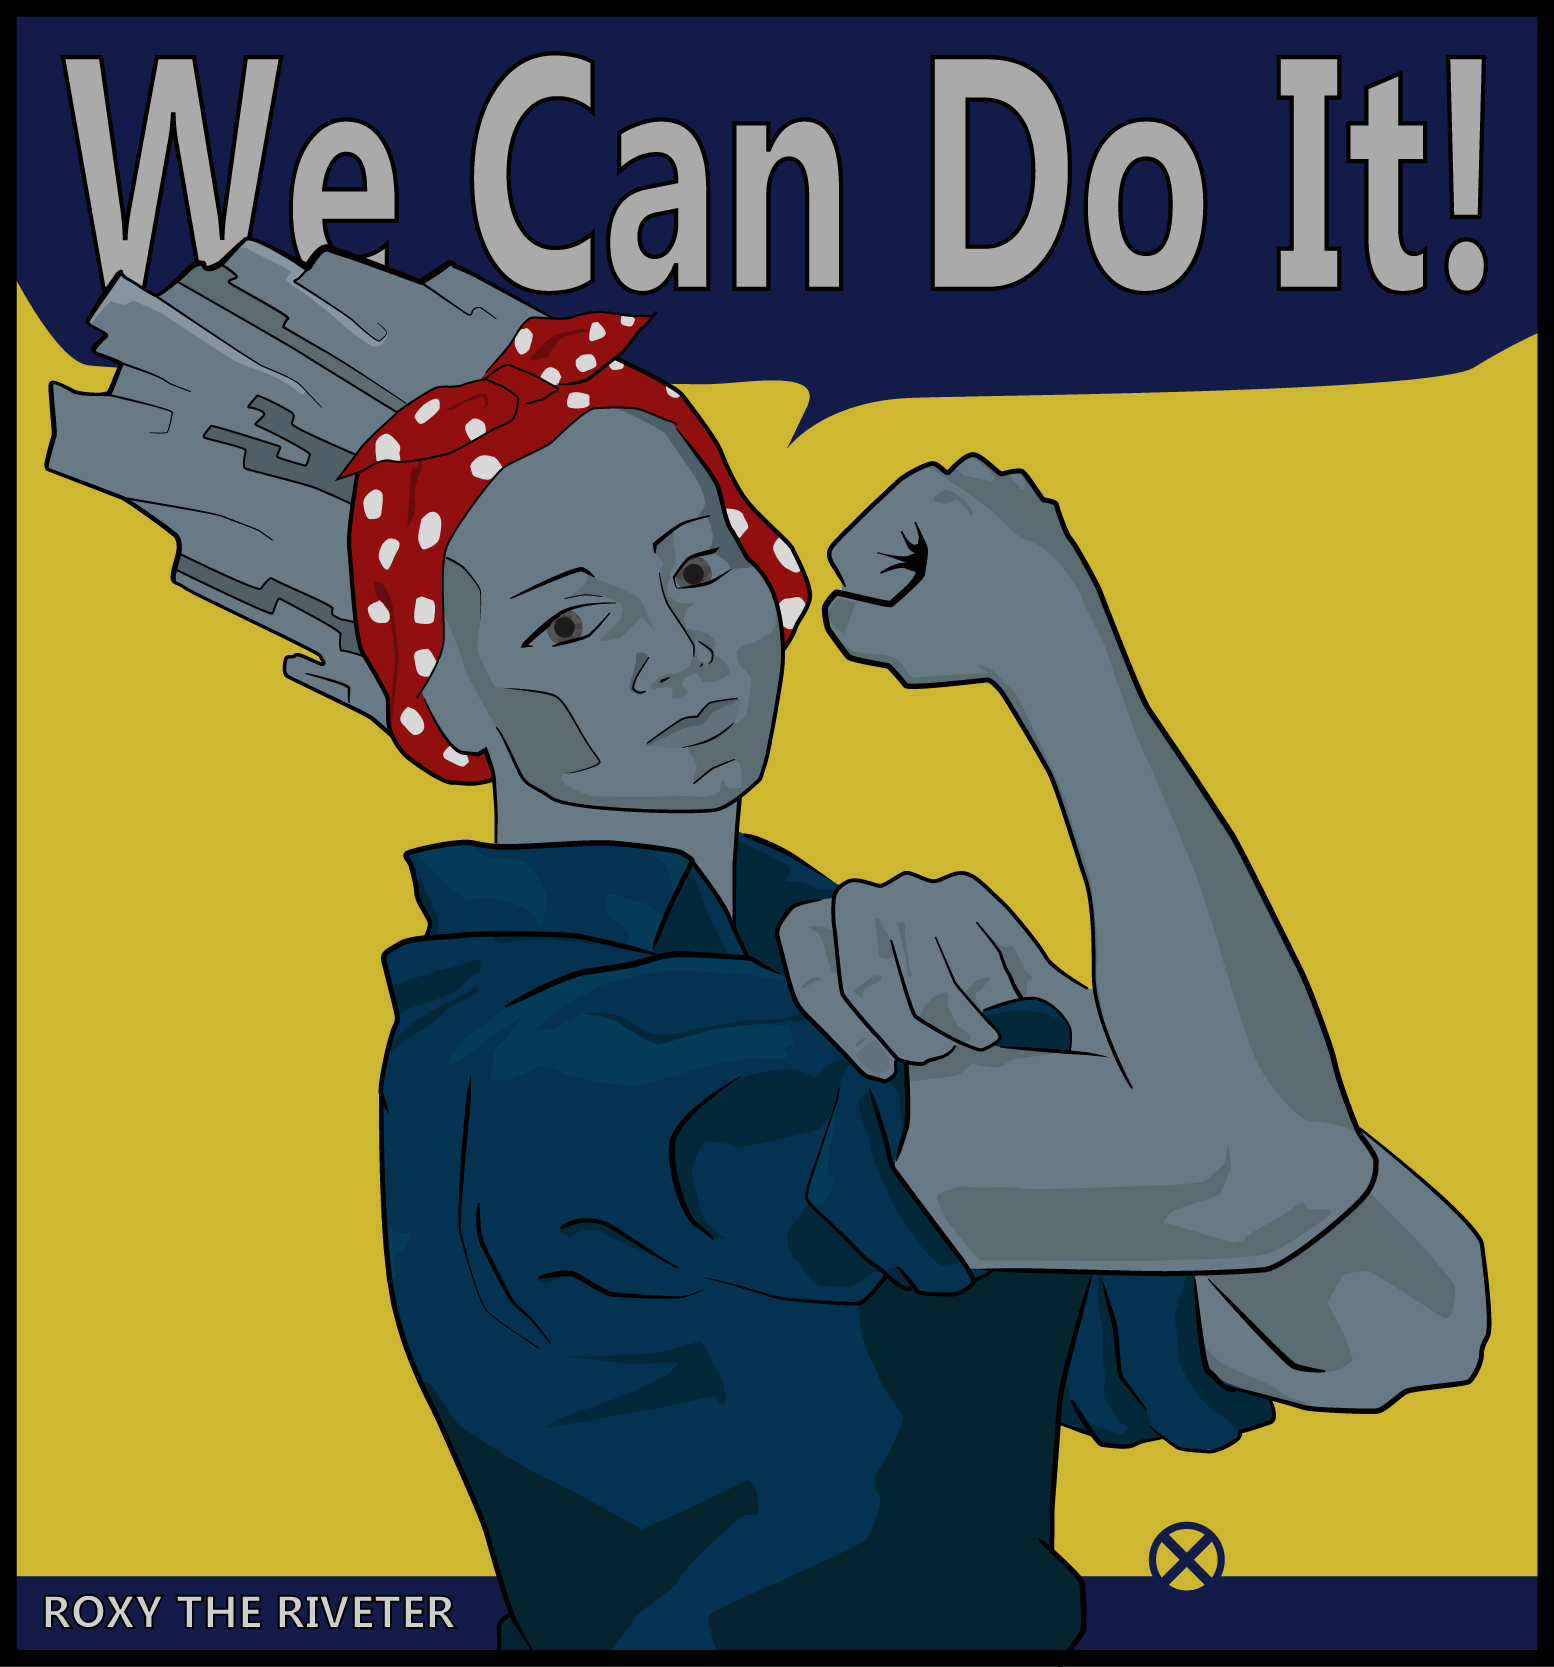 Roxy the Riveter